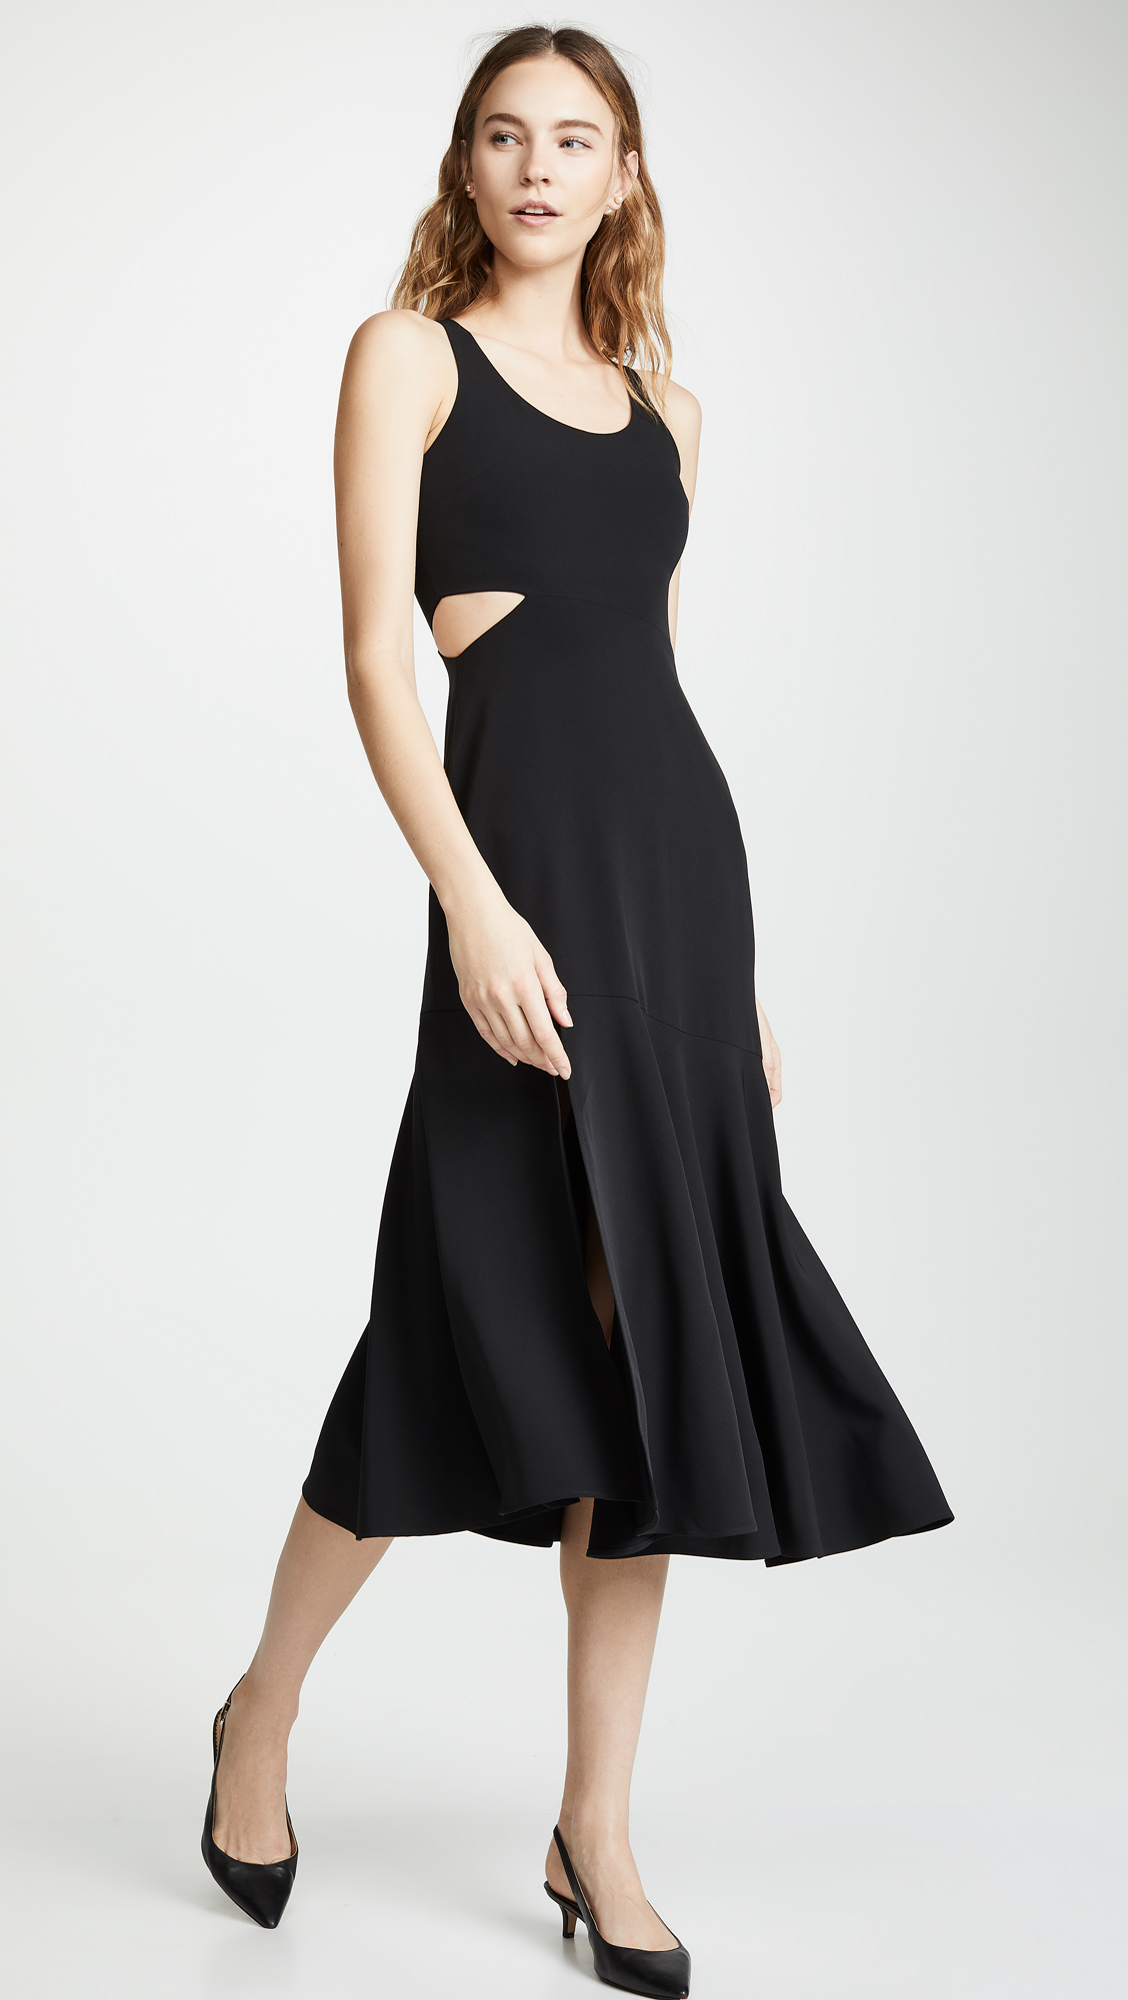 WAYF Arabella Cutout Dress